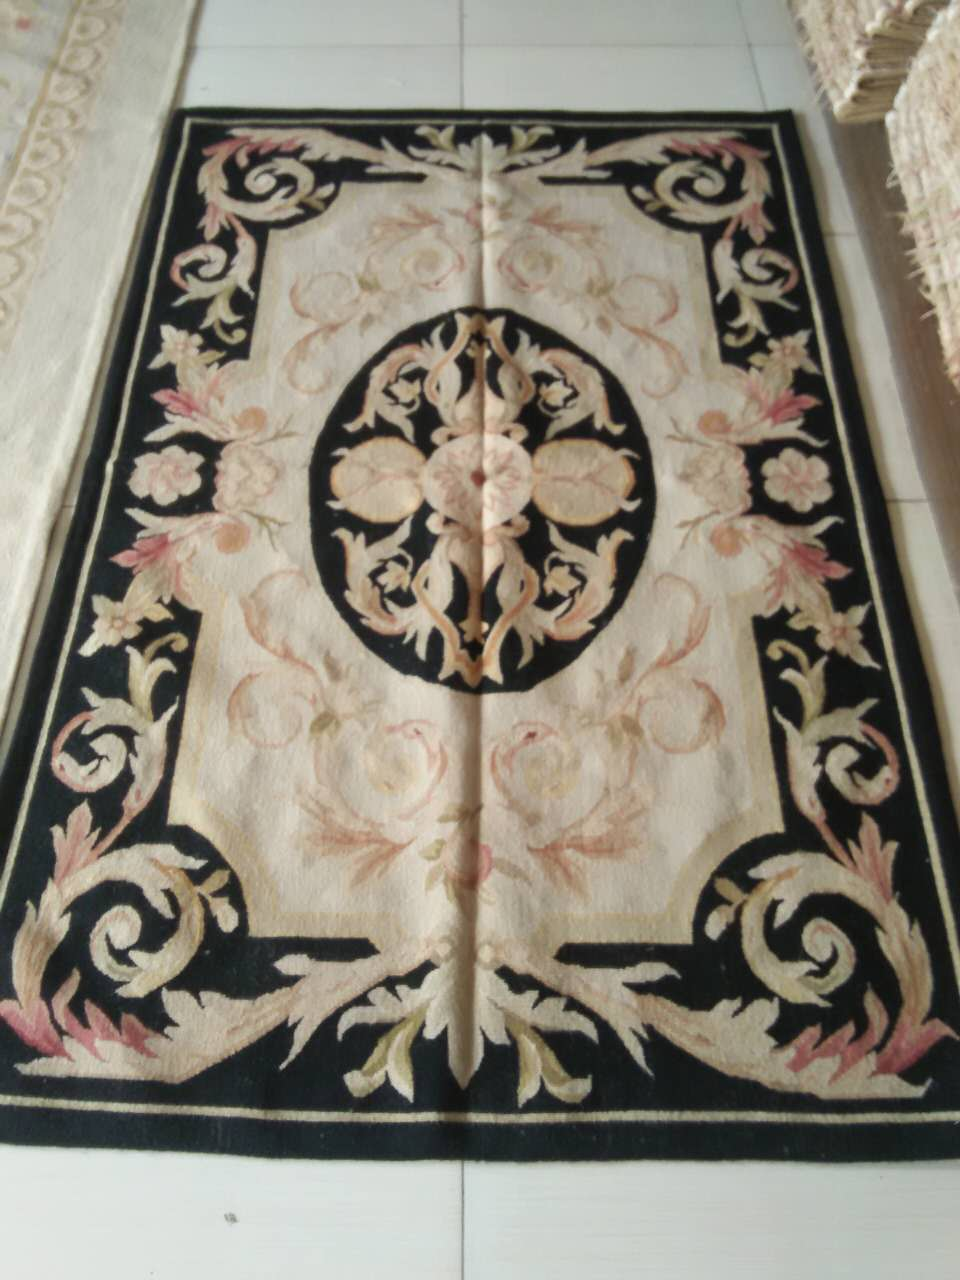 Free Shipping 4X6 Woolen Aubusson rug handmade 100% wool rugs and carpets different sizesFree Shipping 4X6 Woolen Aubusson rug handmade 100% wool rugs and carpets different sizes